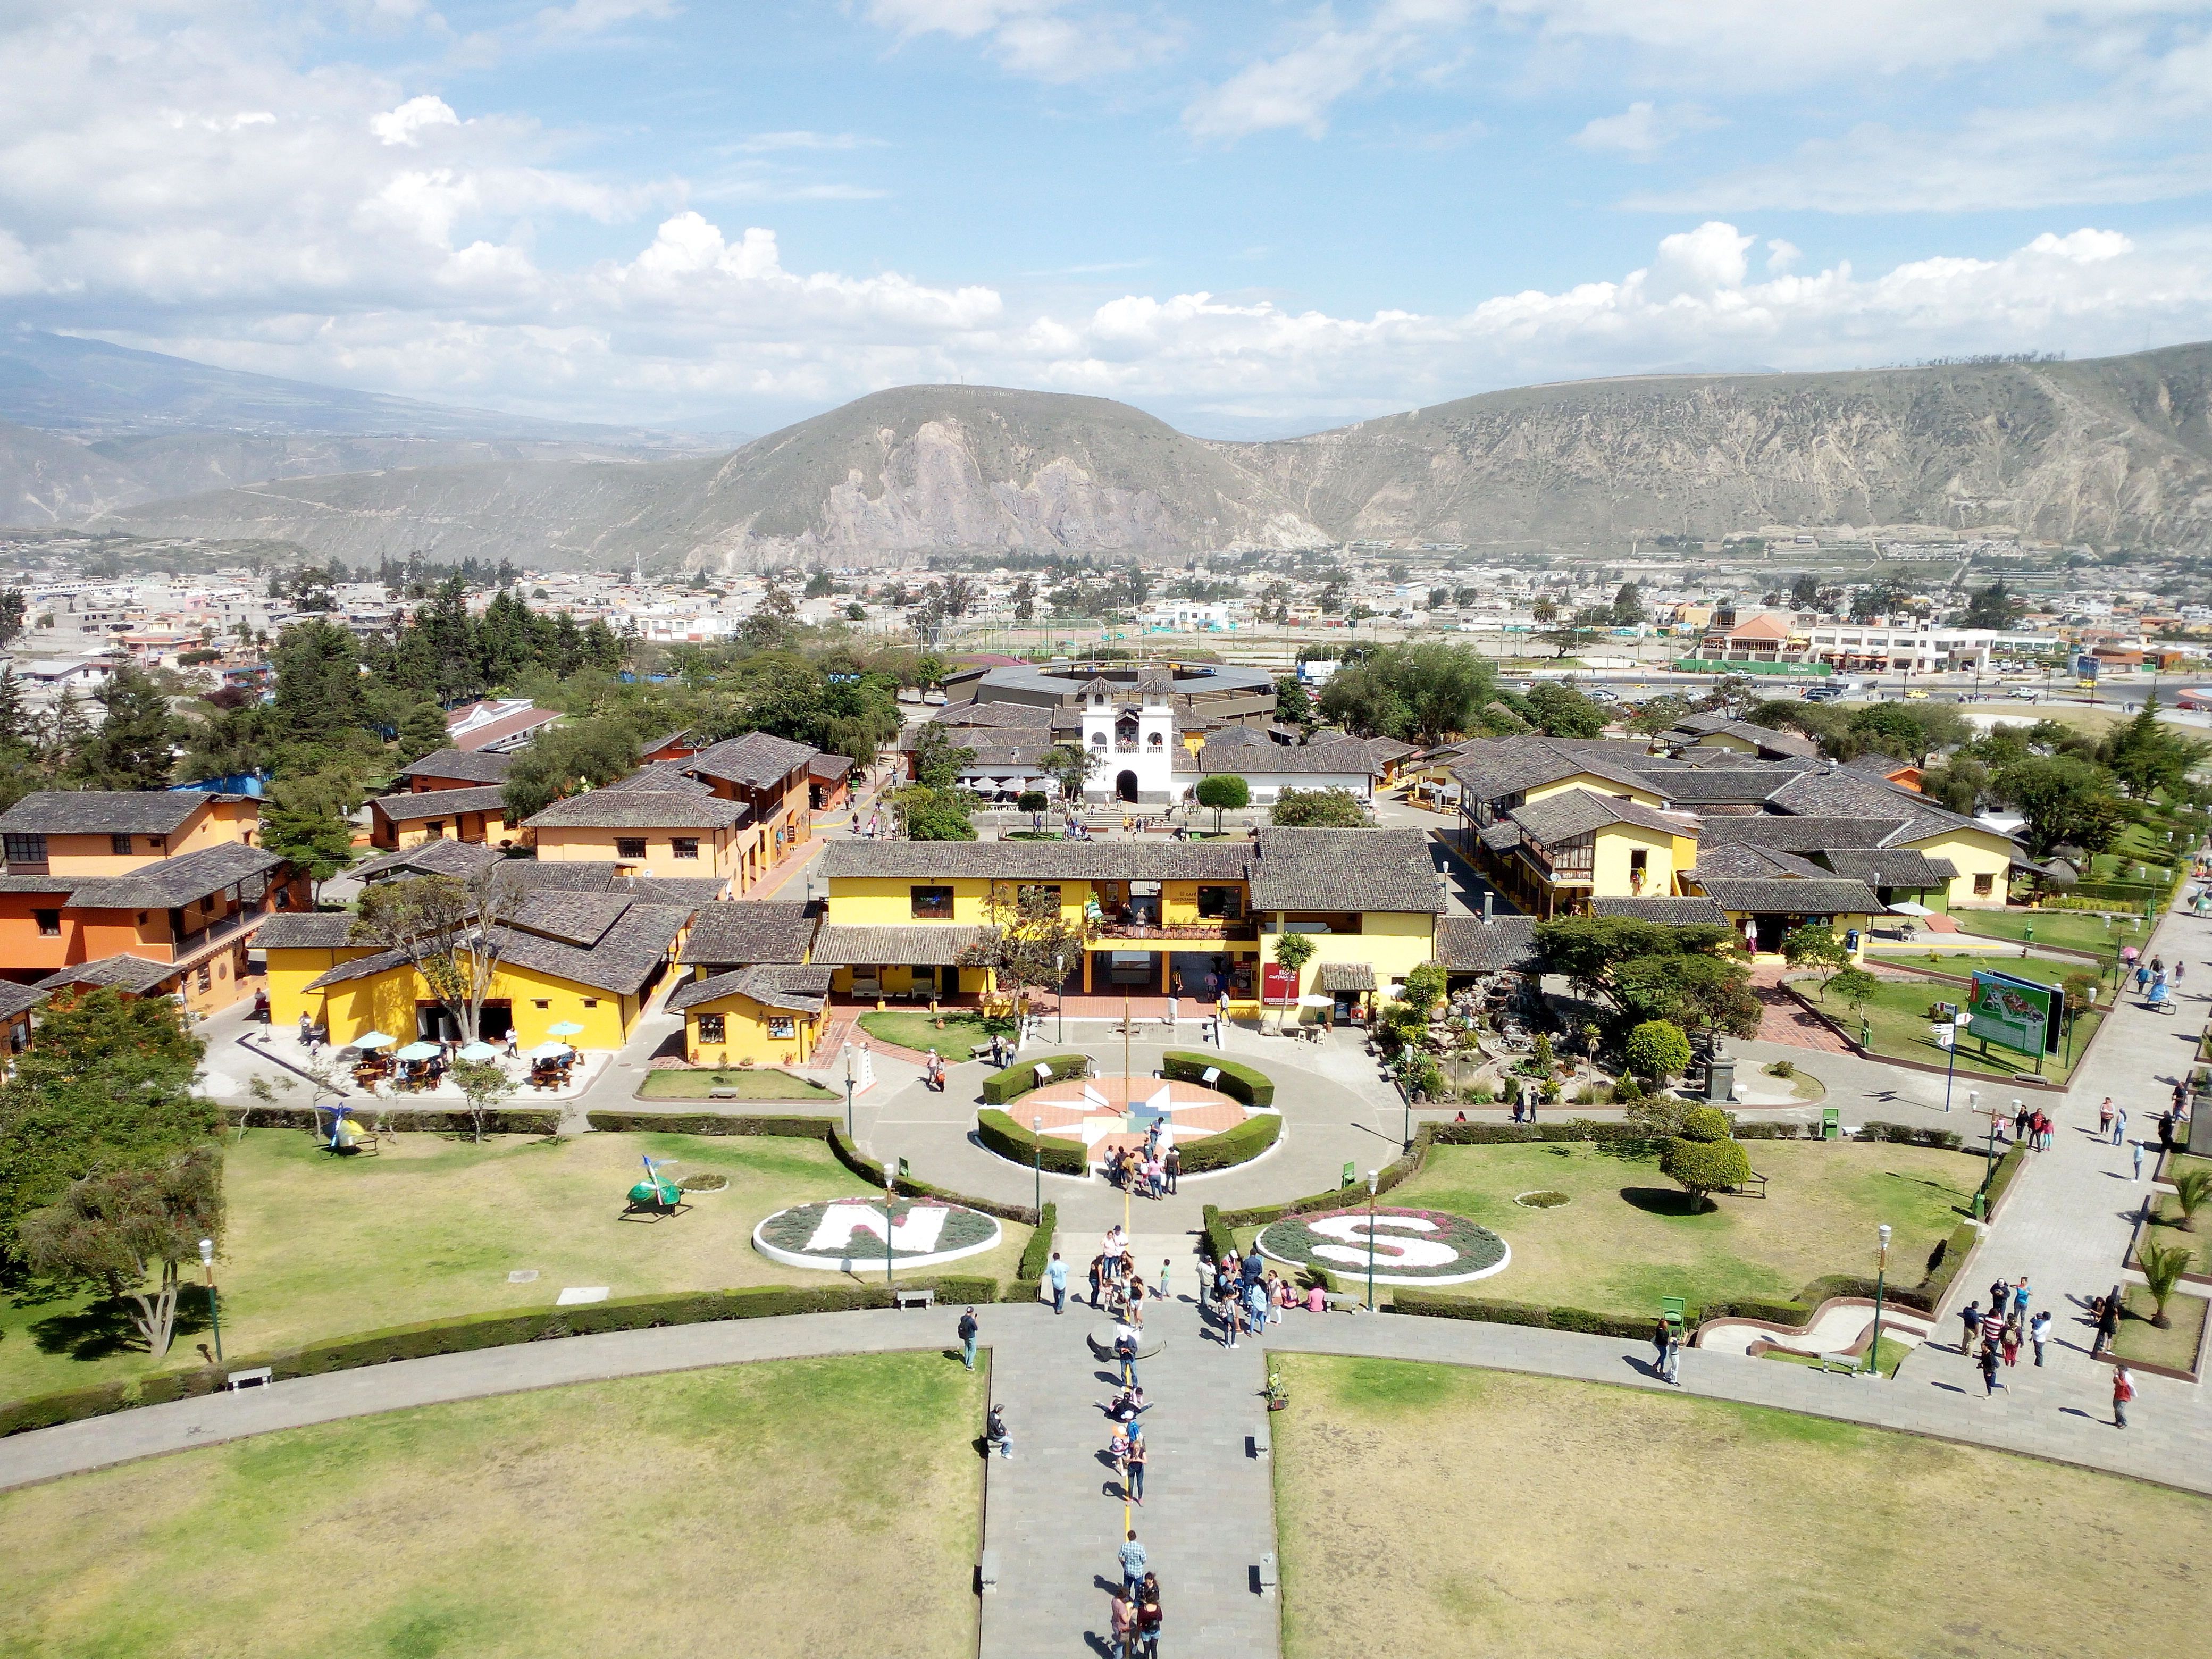 THINGS TO KNOW BEFORE YOU GO TO ECUADOR